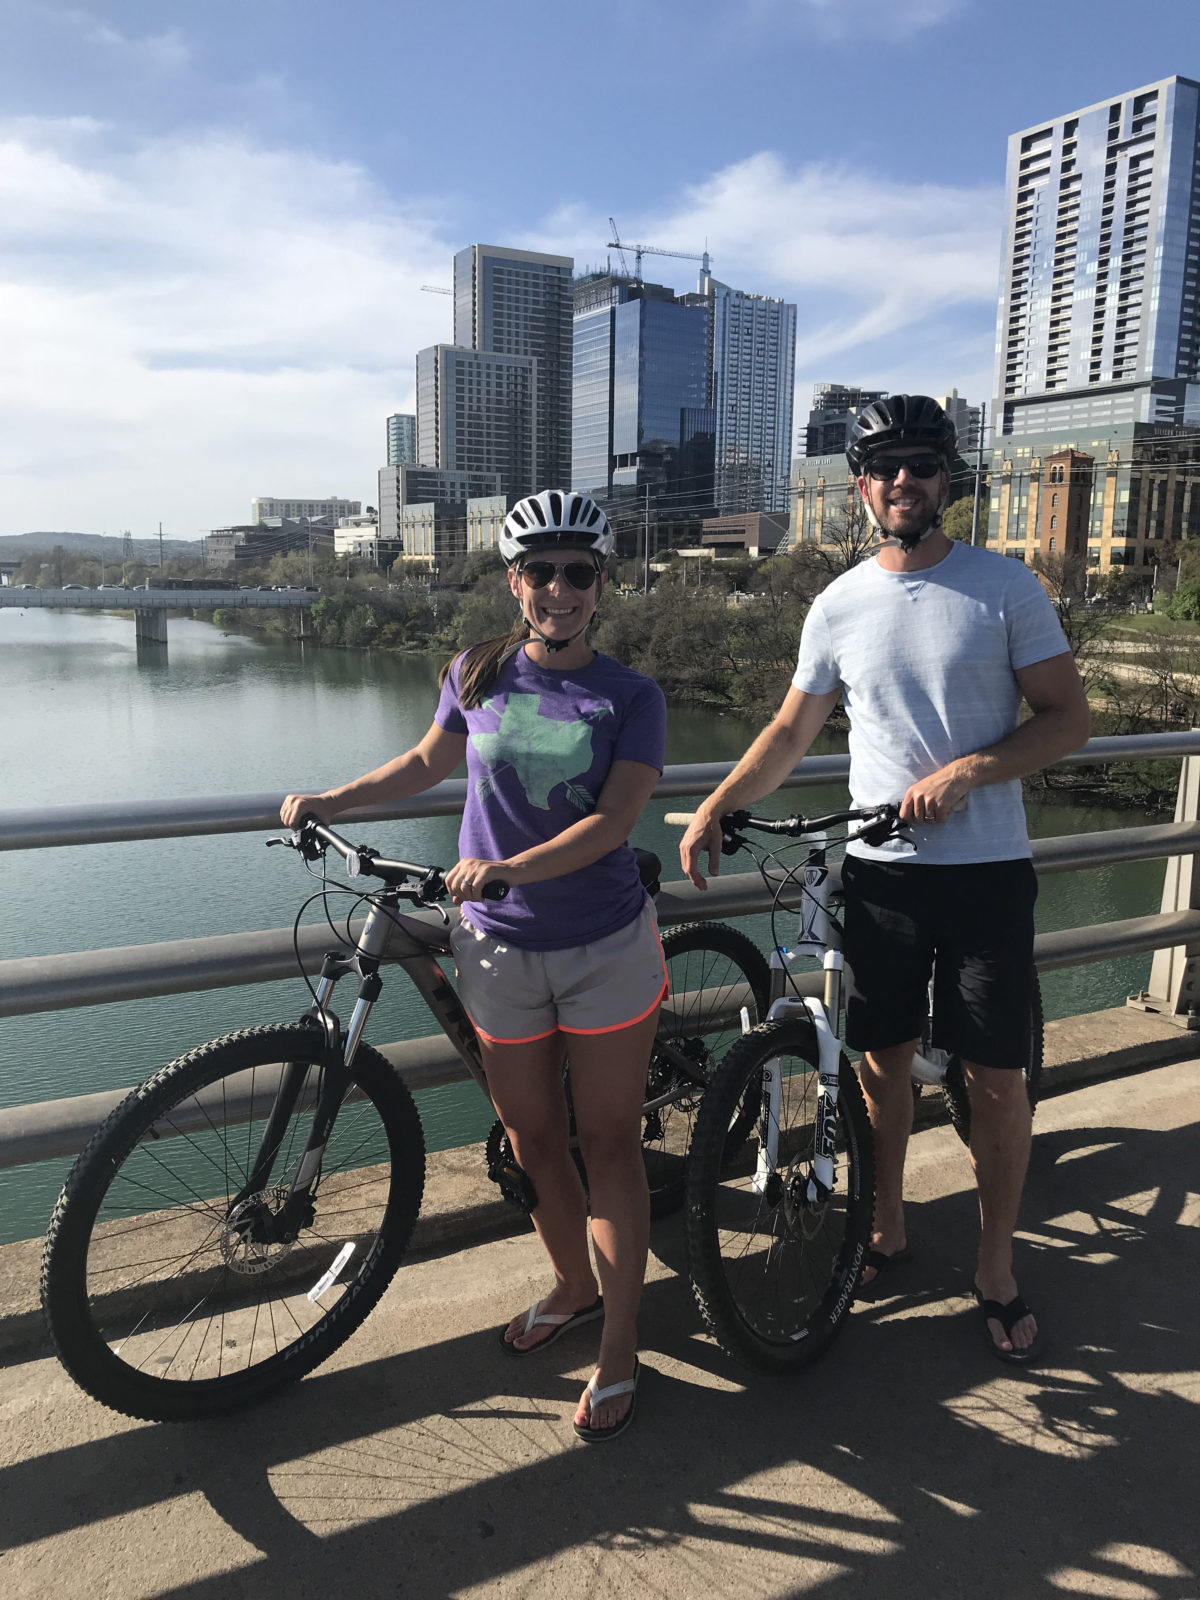 Biking in Austin